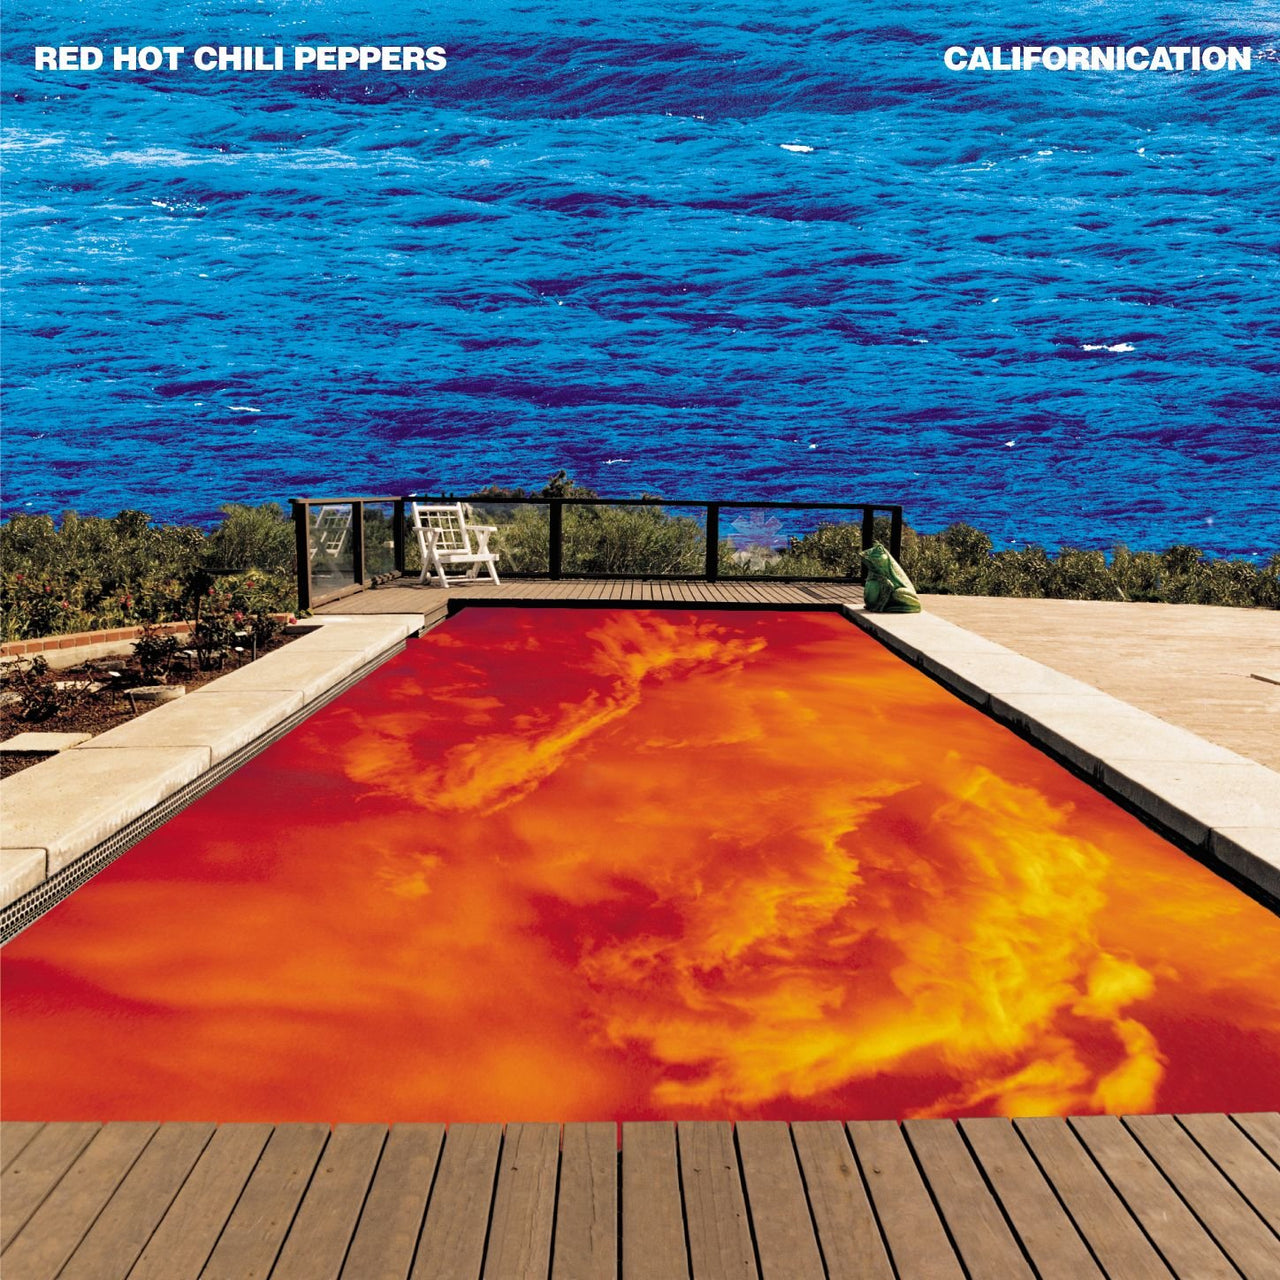 Red Hot Chili Peppers - Californication (LP) - Audio Influence